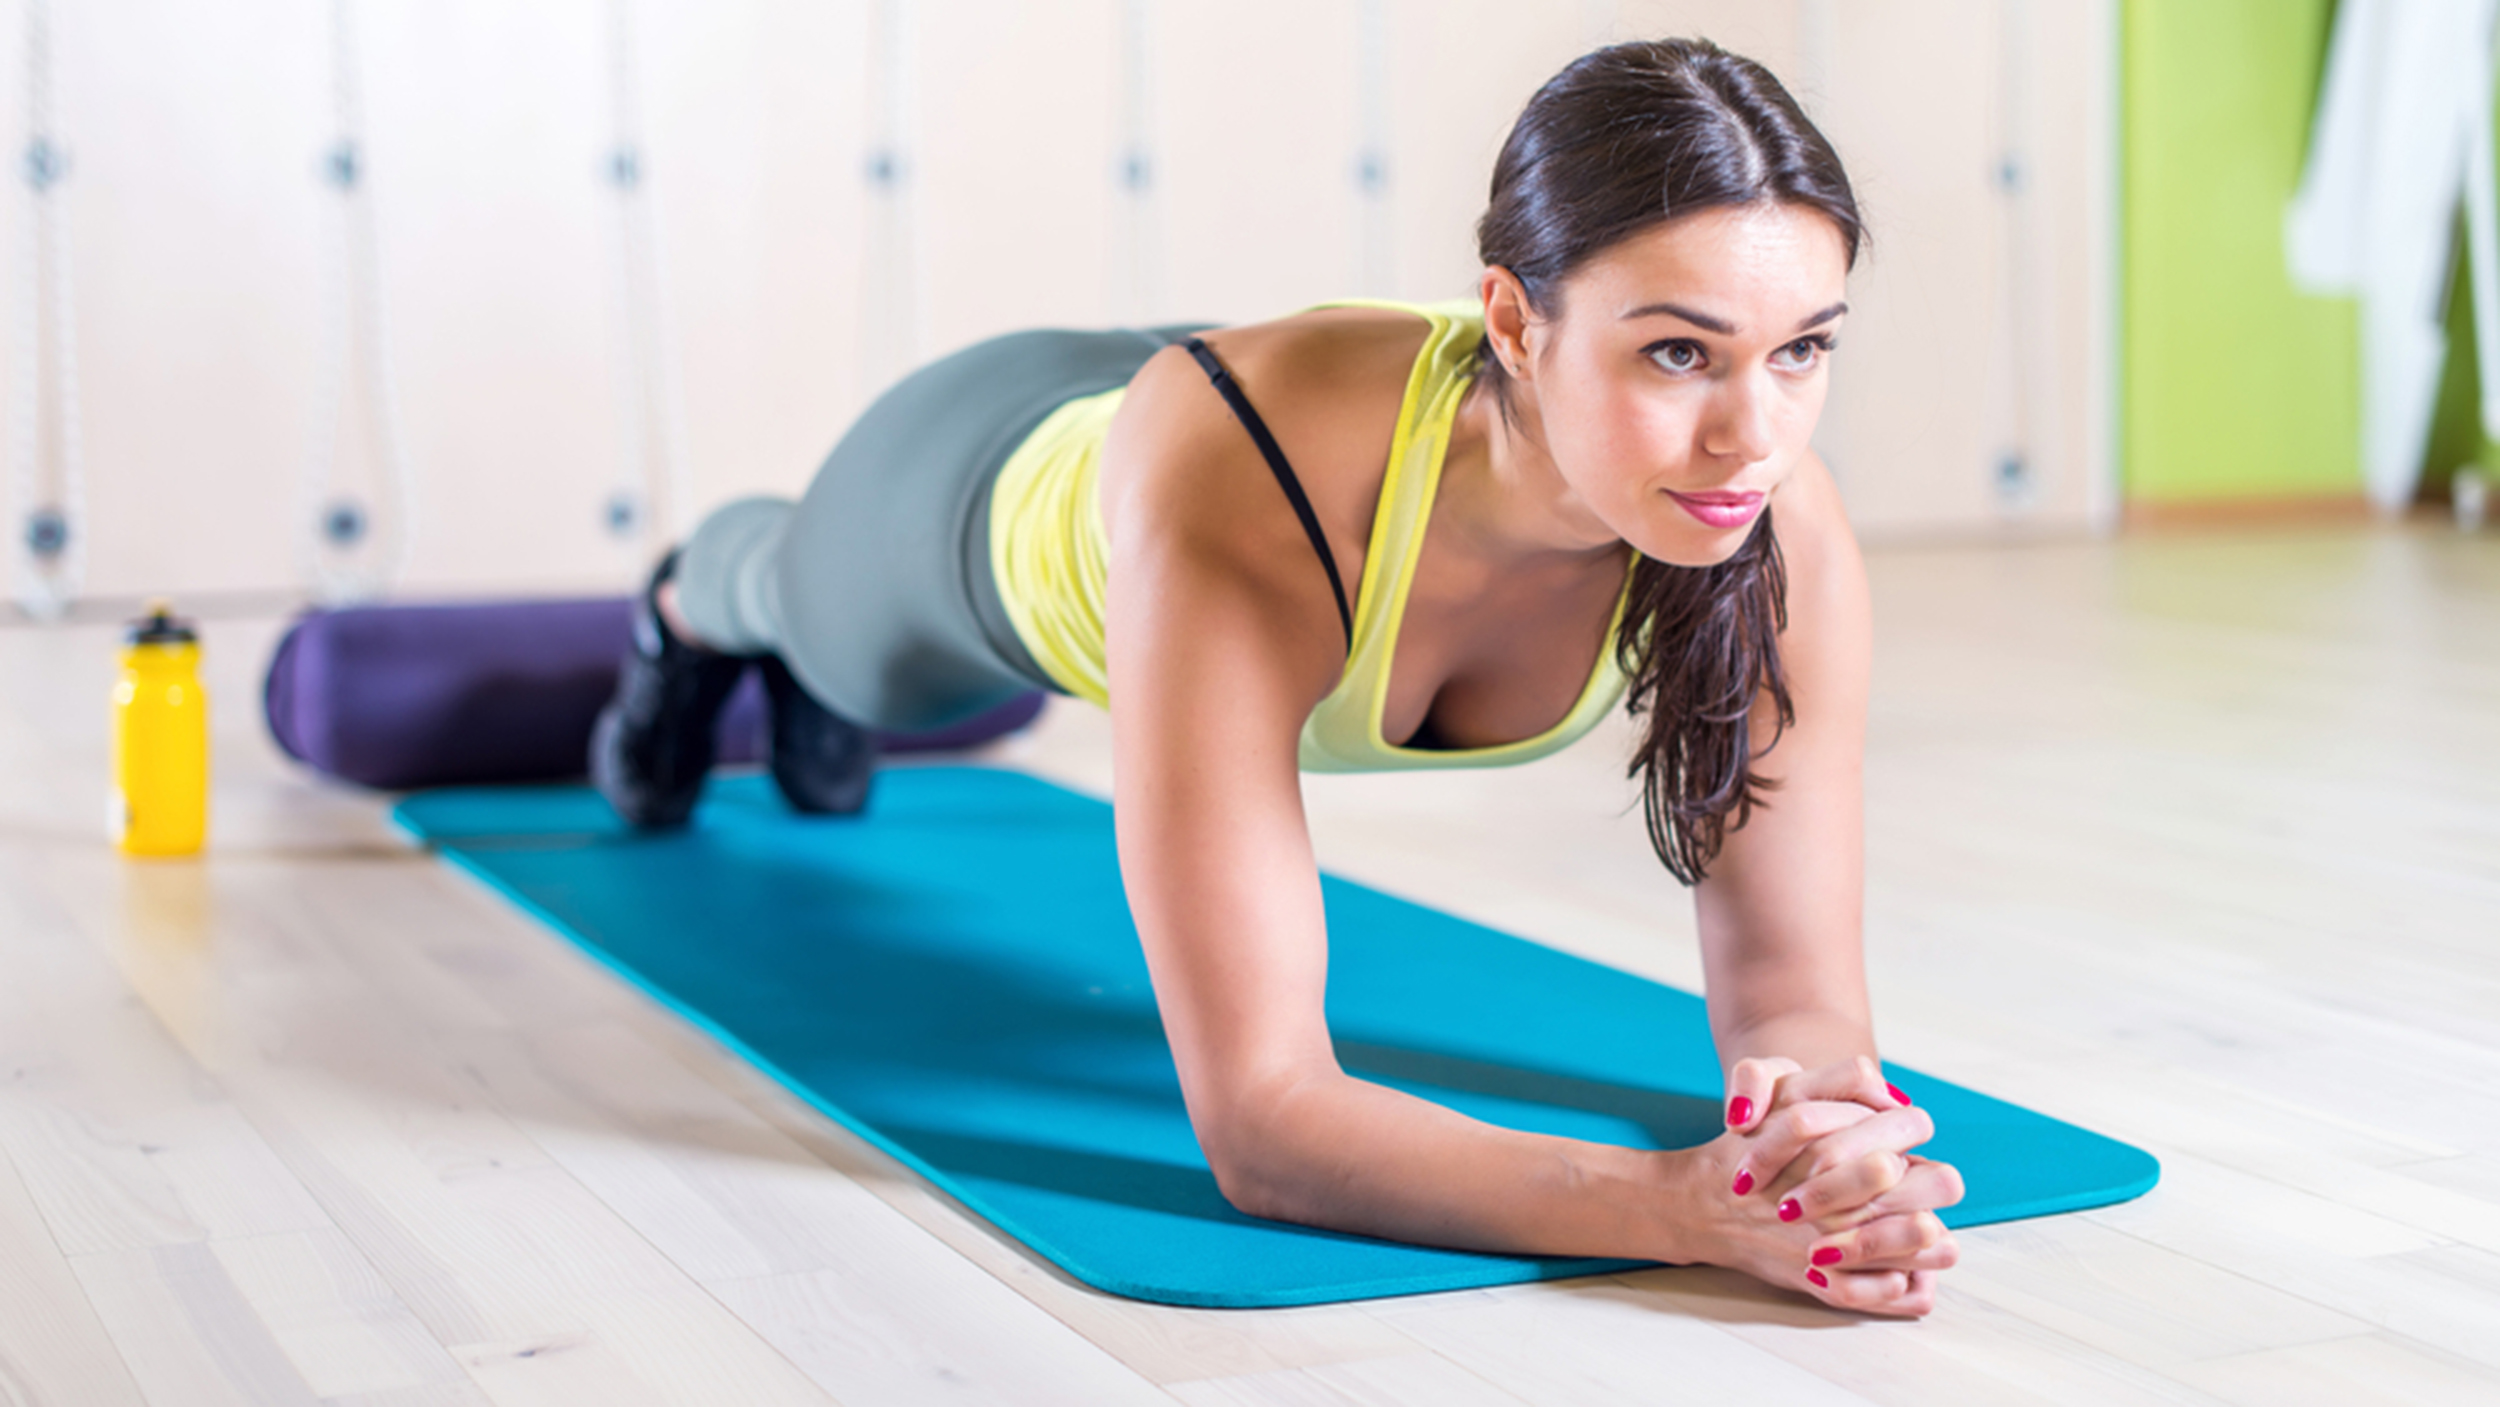 Tone up fast! 5 sculpting moves to get ready for Valentine's Day